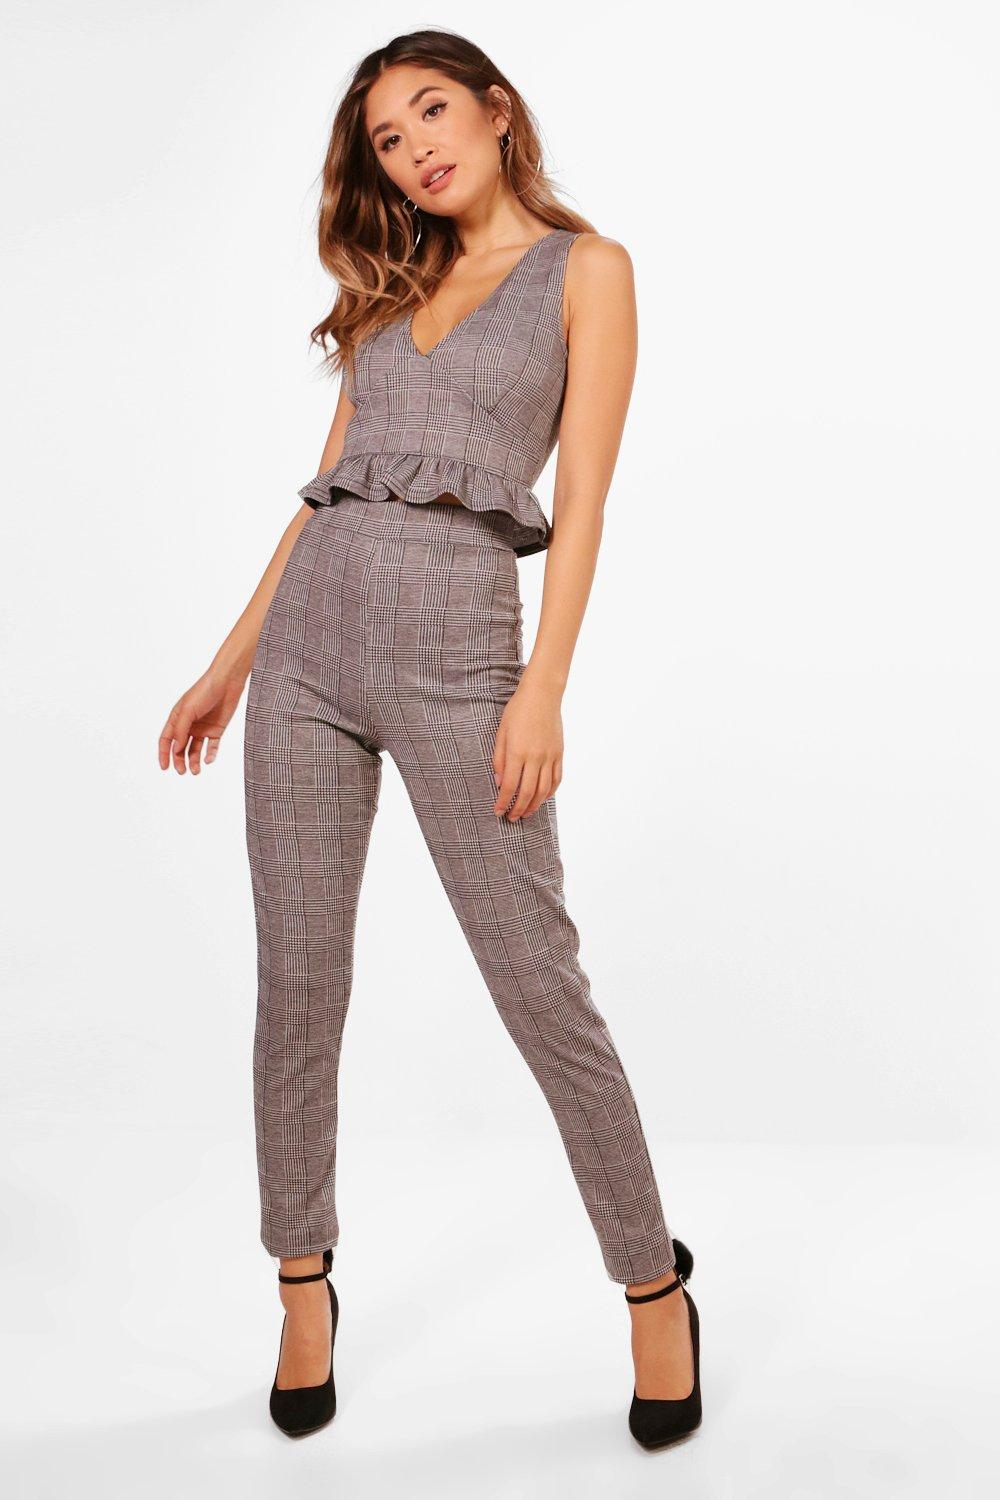 Skinny and Crop Check Trouser grey Plunge Set 7RAExzn